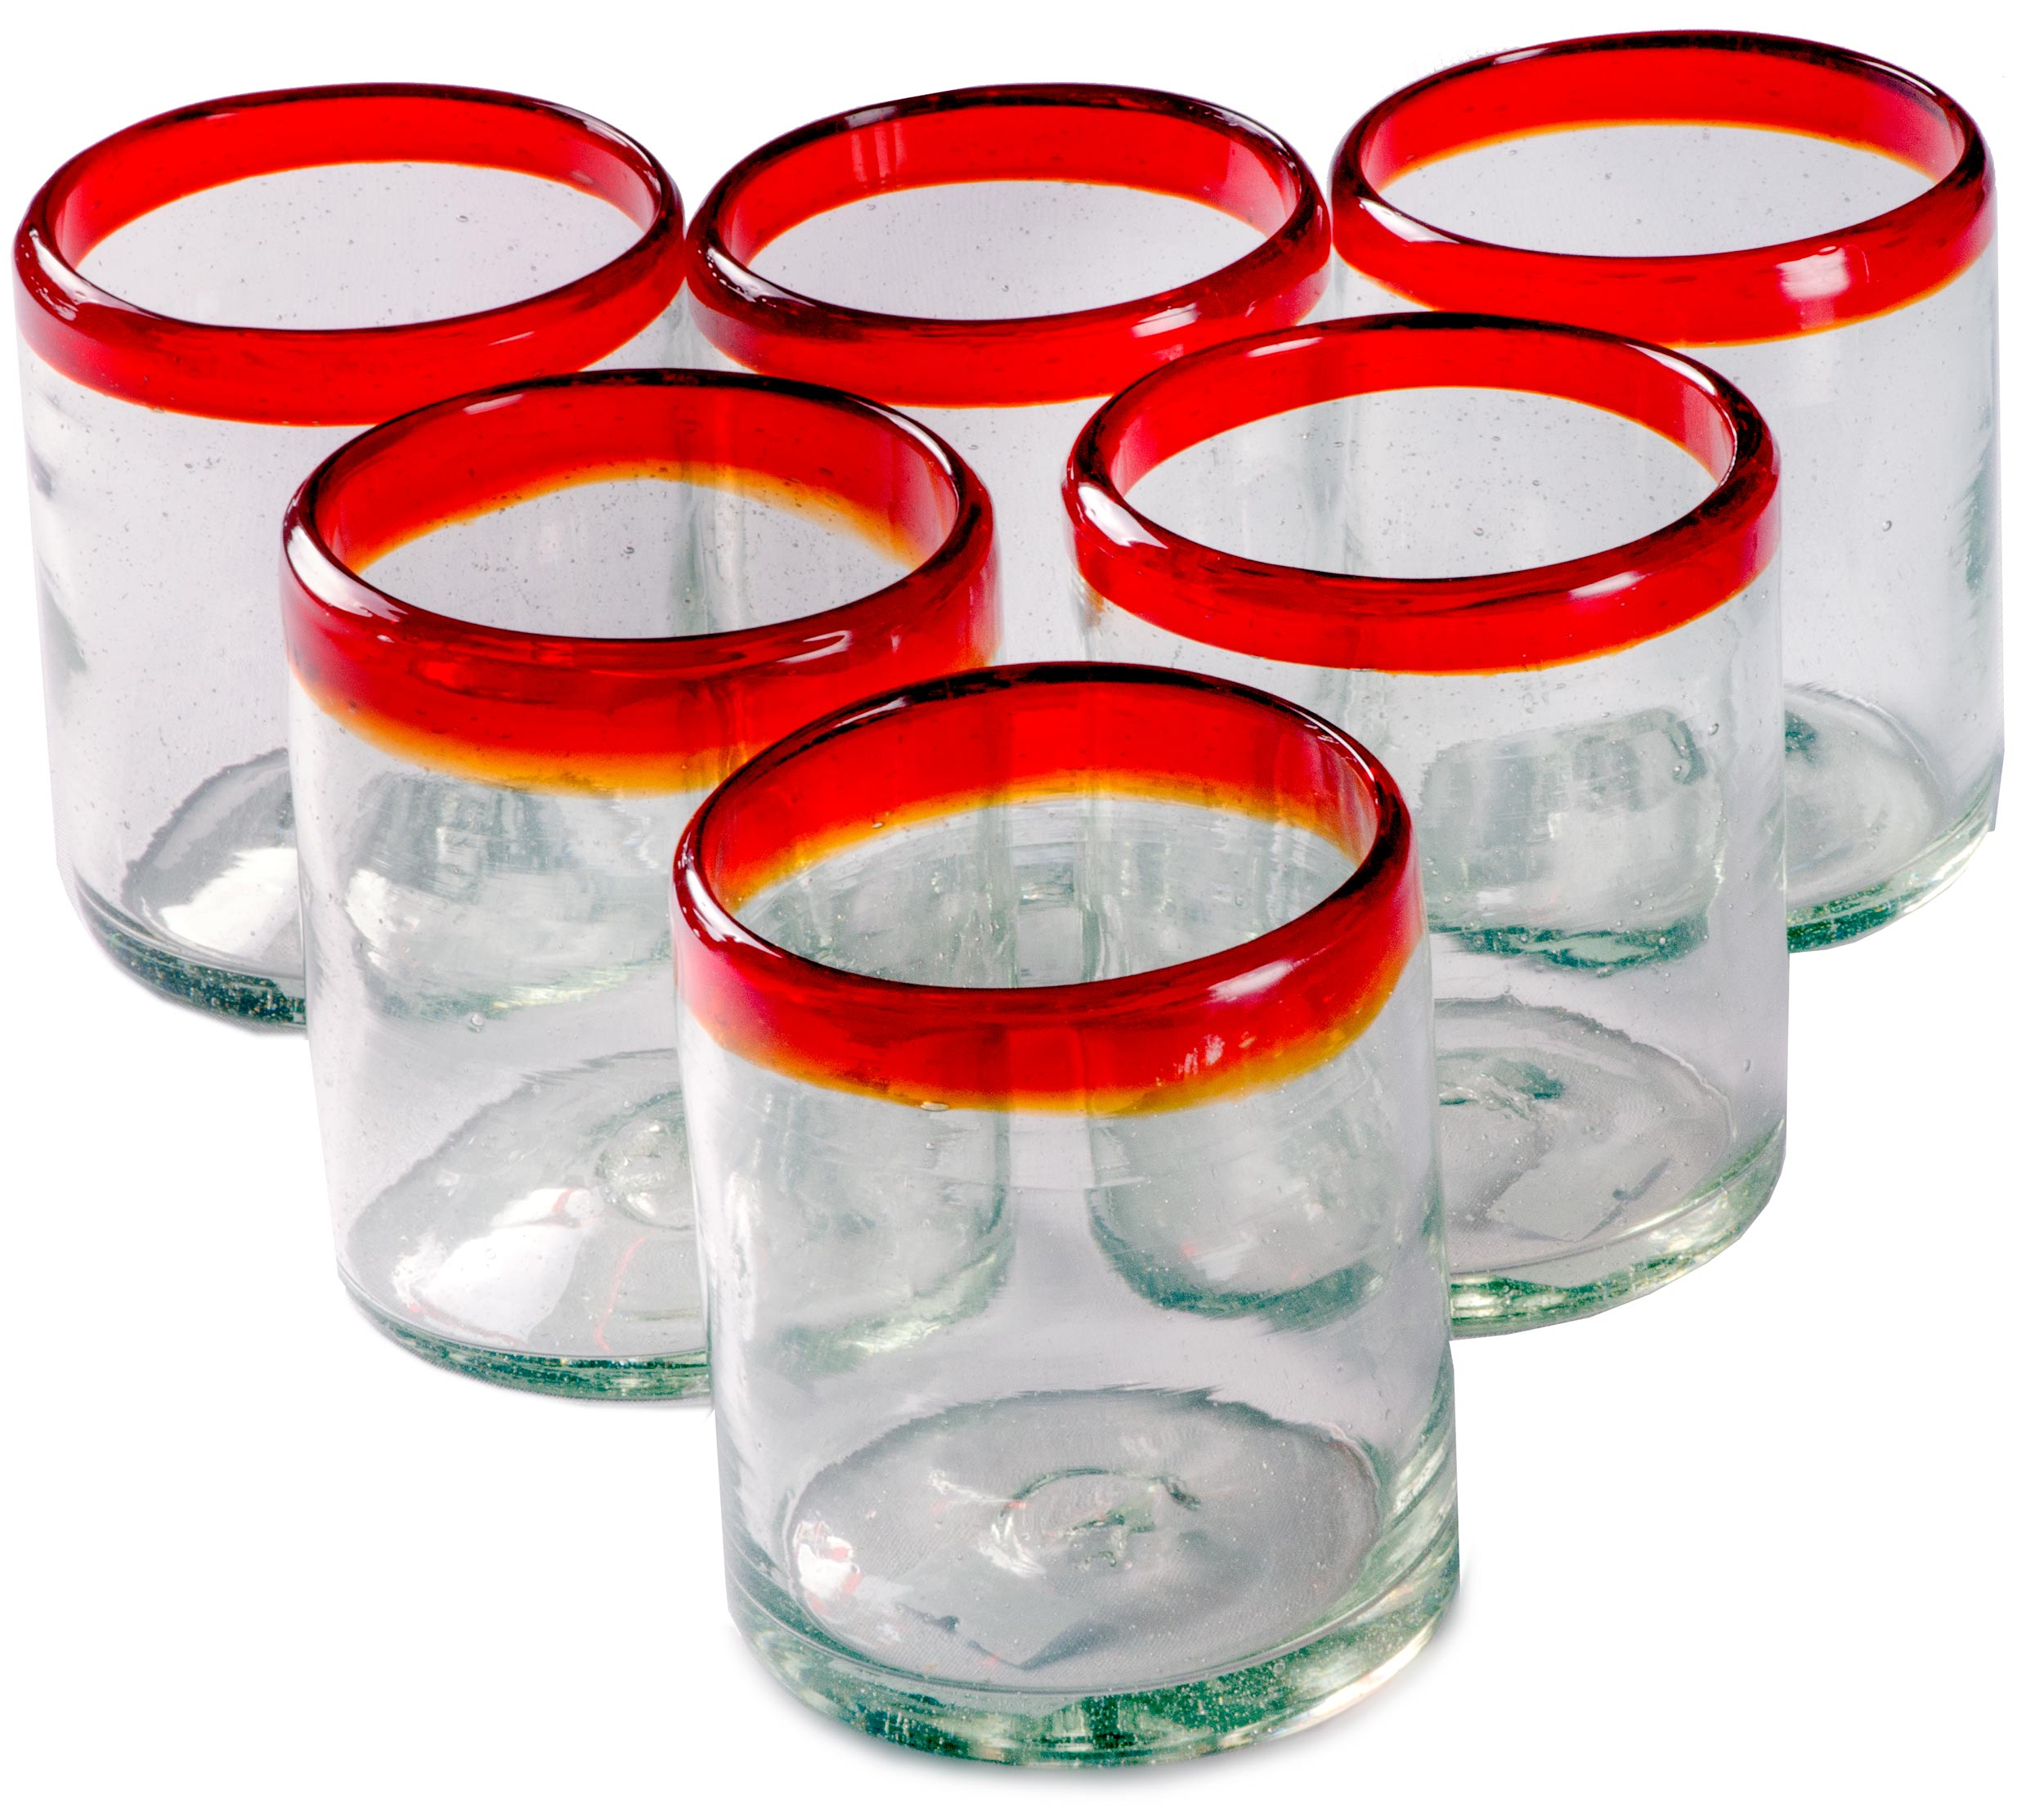 Orion Red Rim 12 oz All Purpose - Set of 6 - Orion's Table Mexican Glassware